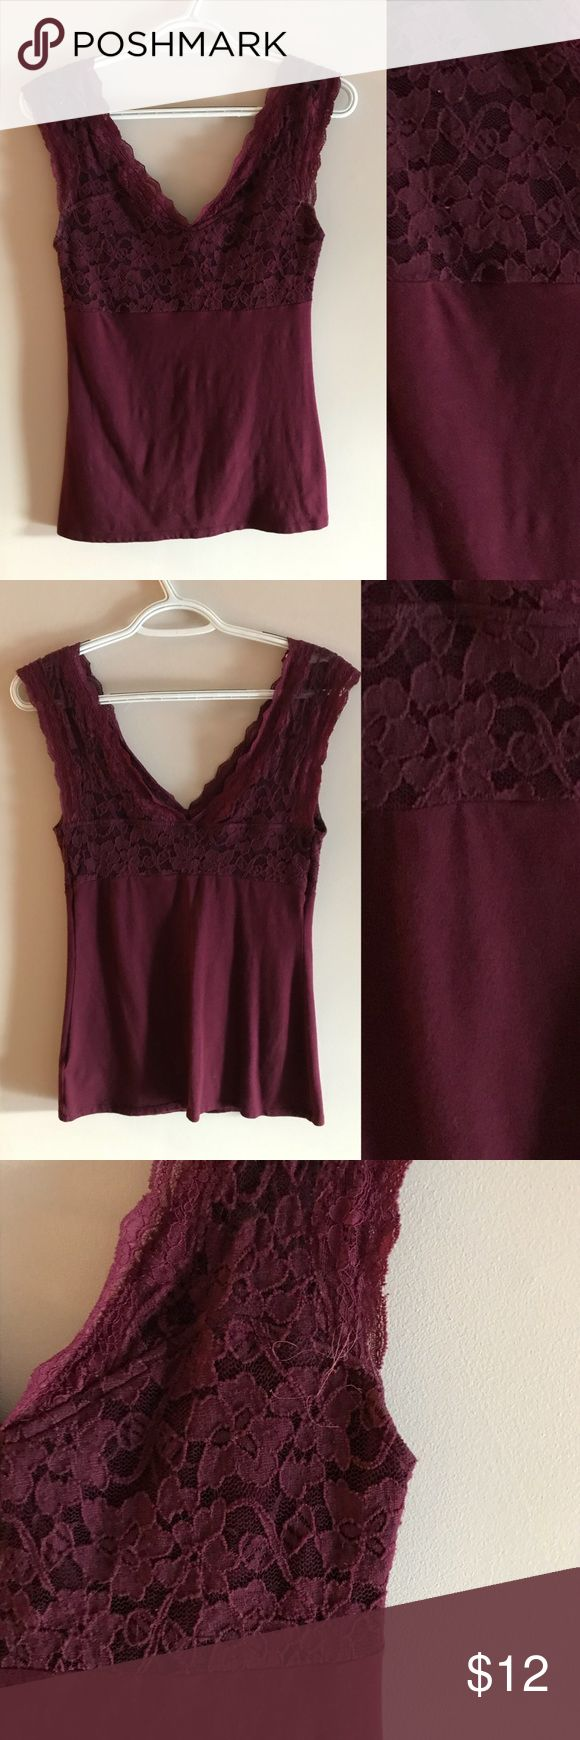 Maroon lace low cut tank top Medium express maroon low cut lace tank top Tight fitting Worn a couple of times good condition has some fraying on the front arm area from the dryer Really cute with a skirt or tucked into jeans Express Tops Tank Tops